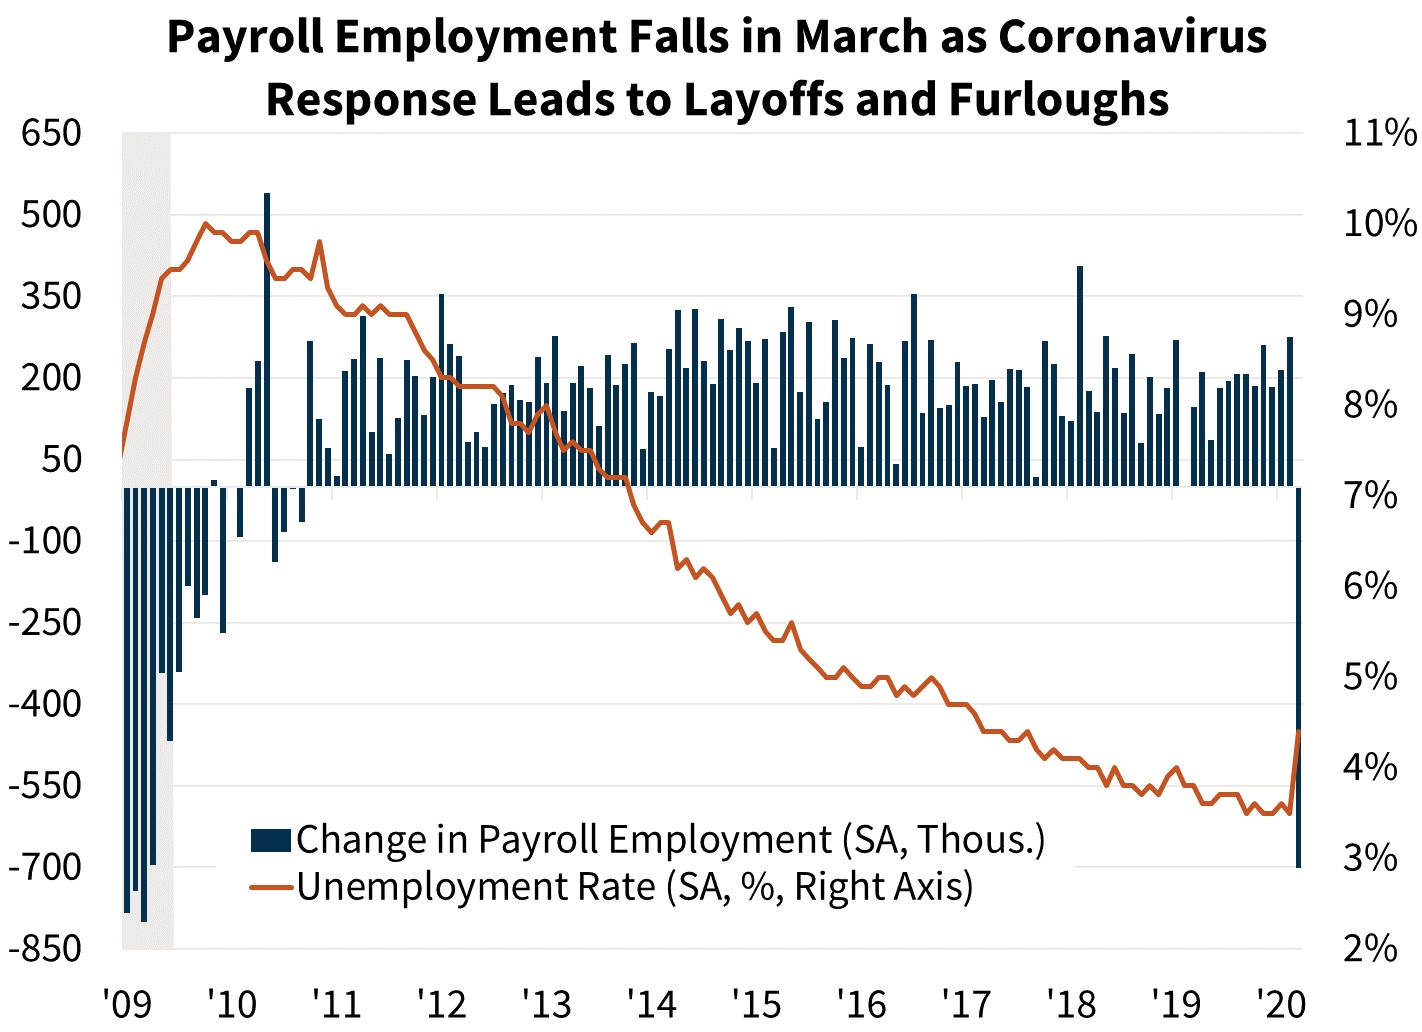 Payroll Employment Falls in March as Coronavirus Response Leads to Layoffs and Furloughs